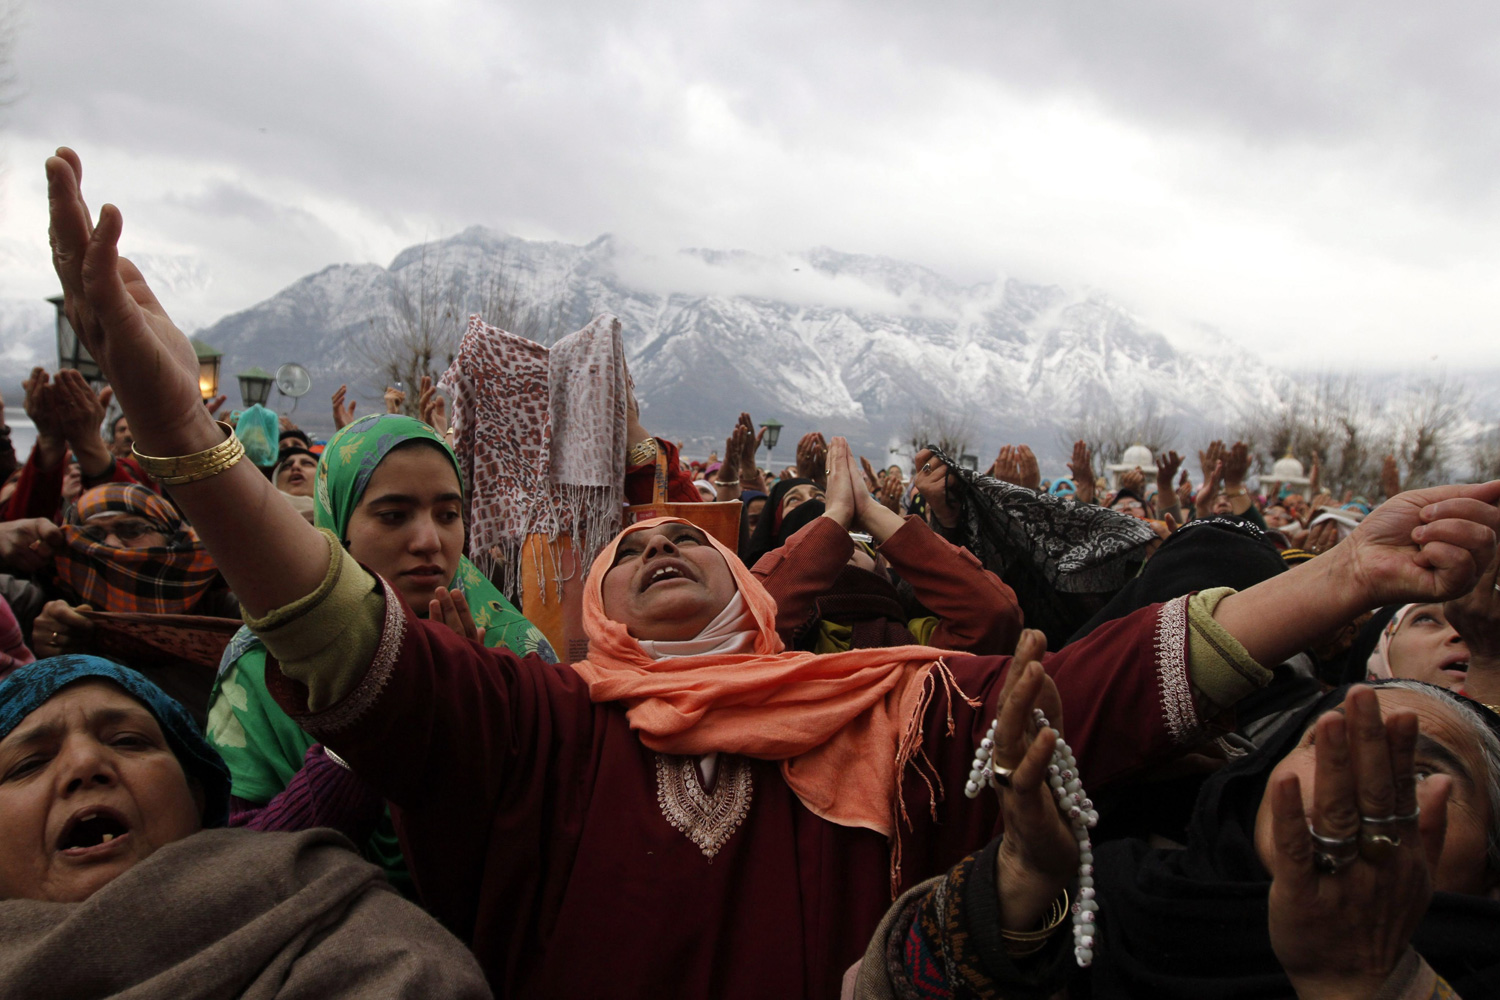 February 5, 2012. Kashmiri Muslim devotees raise their hands for prayers as a head priest displays a relic of Prophet Mohammed at the Hazratbal shrine on the occasion of Eid-e-Milad, or birthday of Prophet Mohammed, in Srinagar, India.